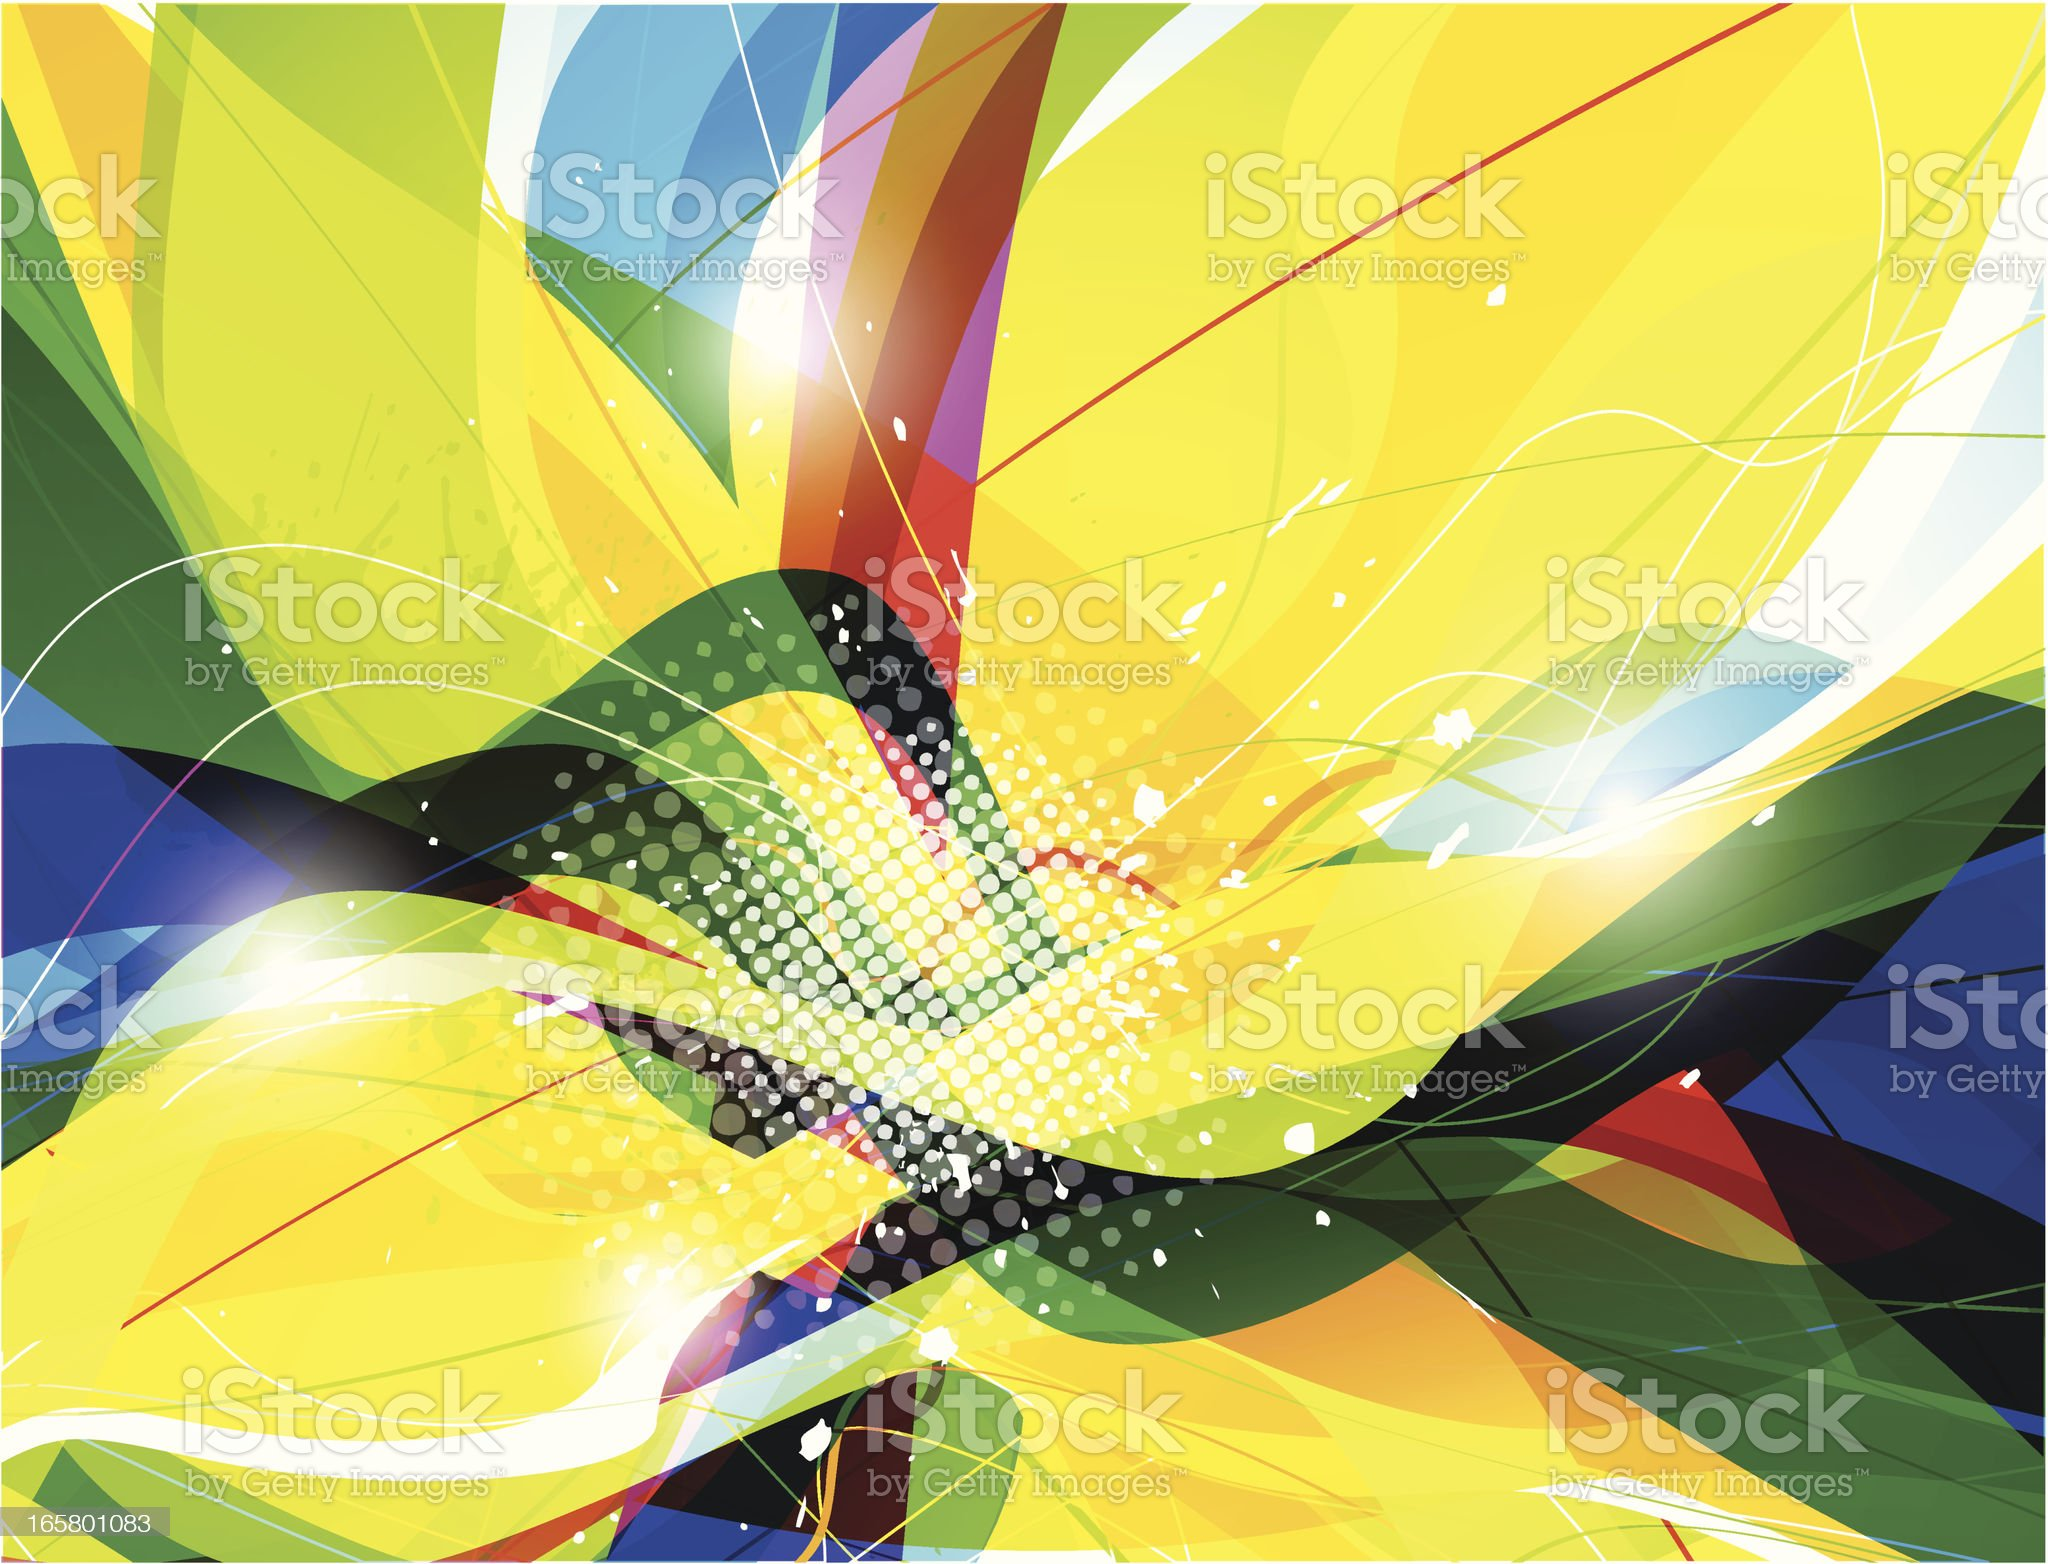 Lines royalty-free stock vector art